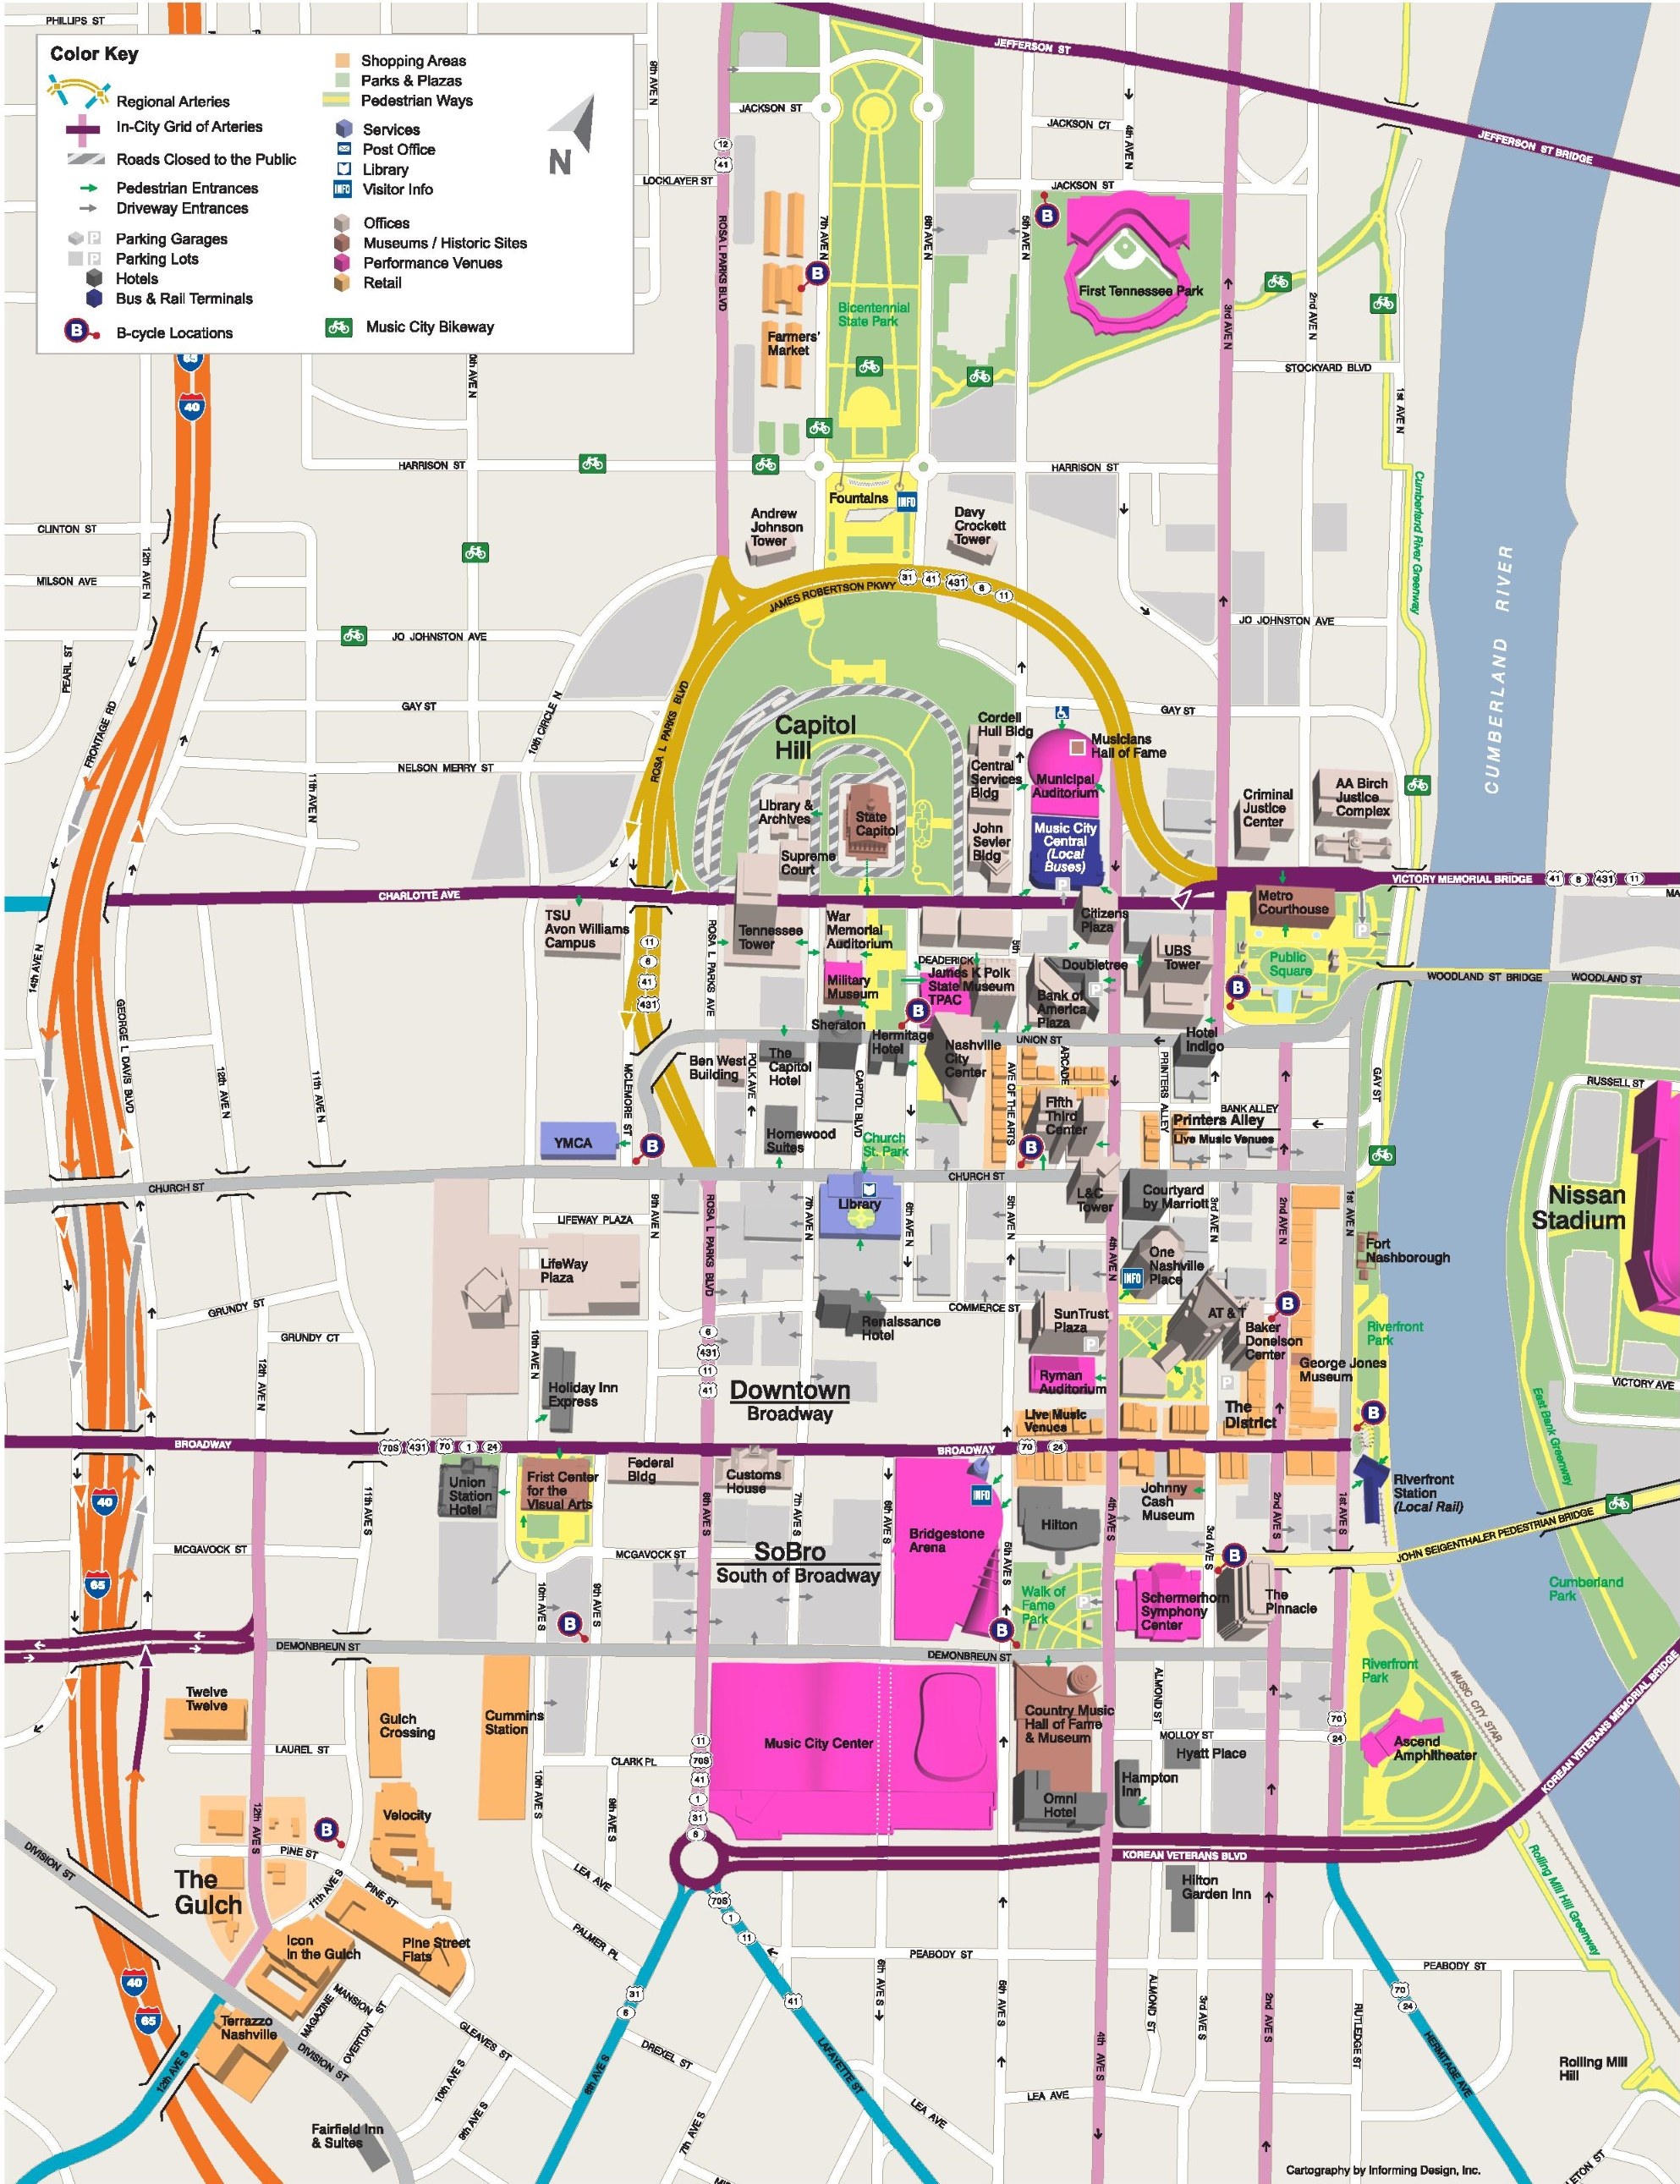 Nashville tourist attractions map – Usa Tourist Attractions Map